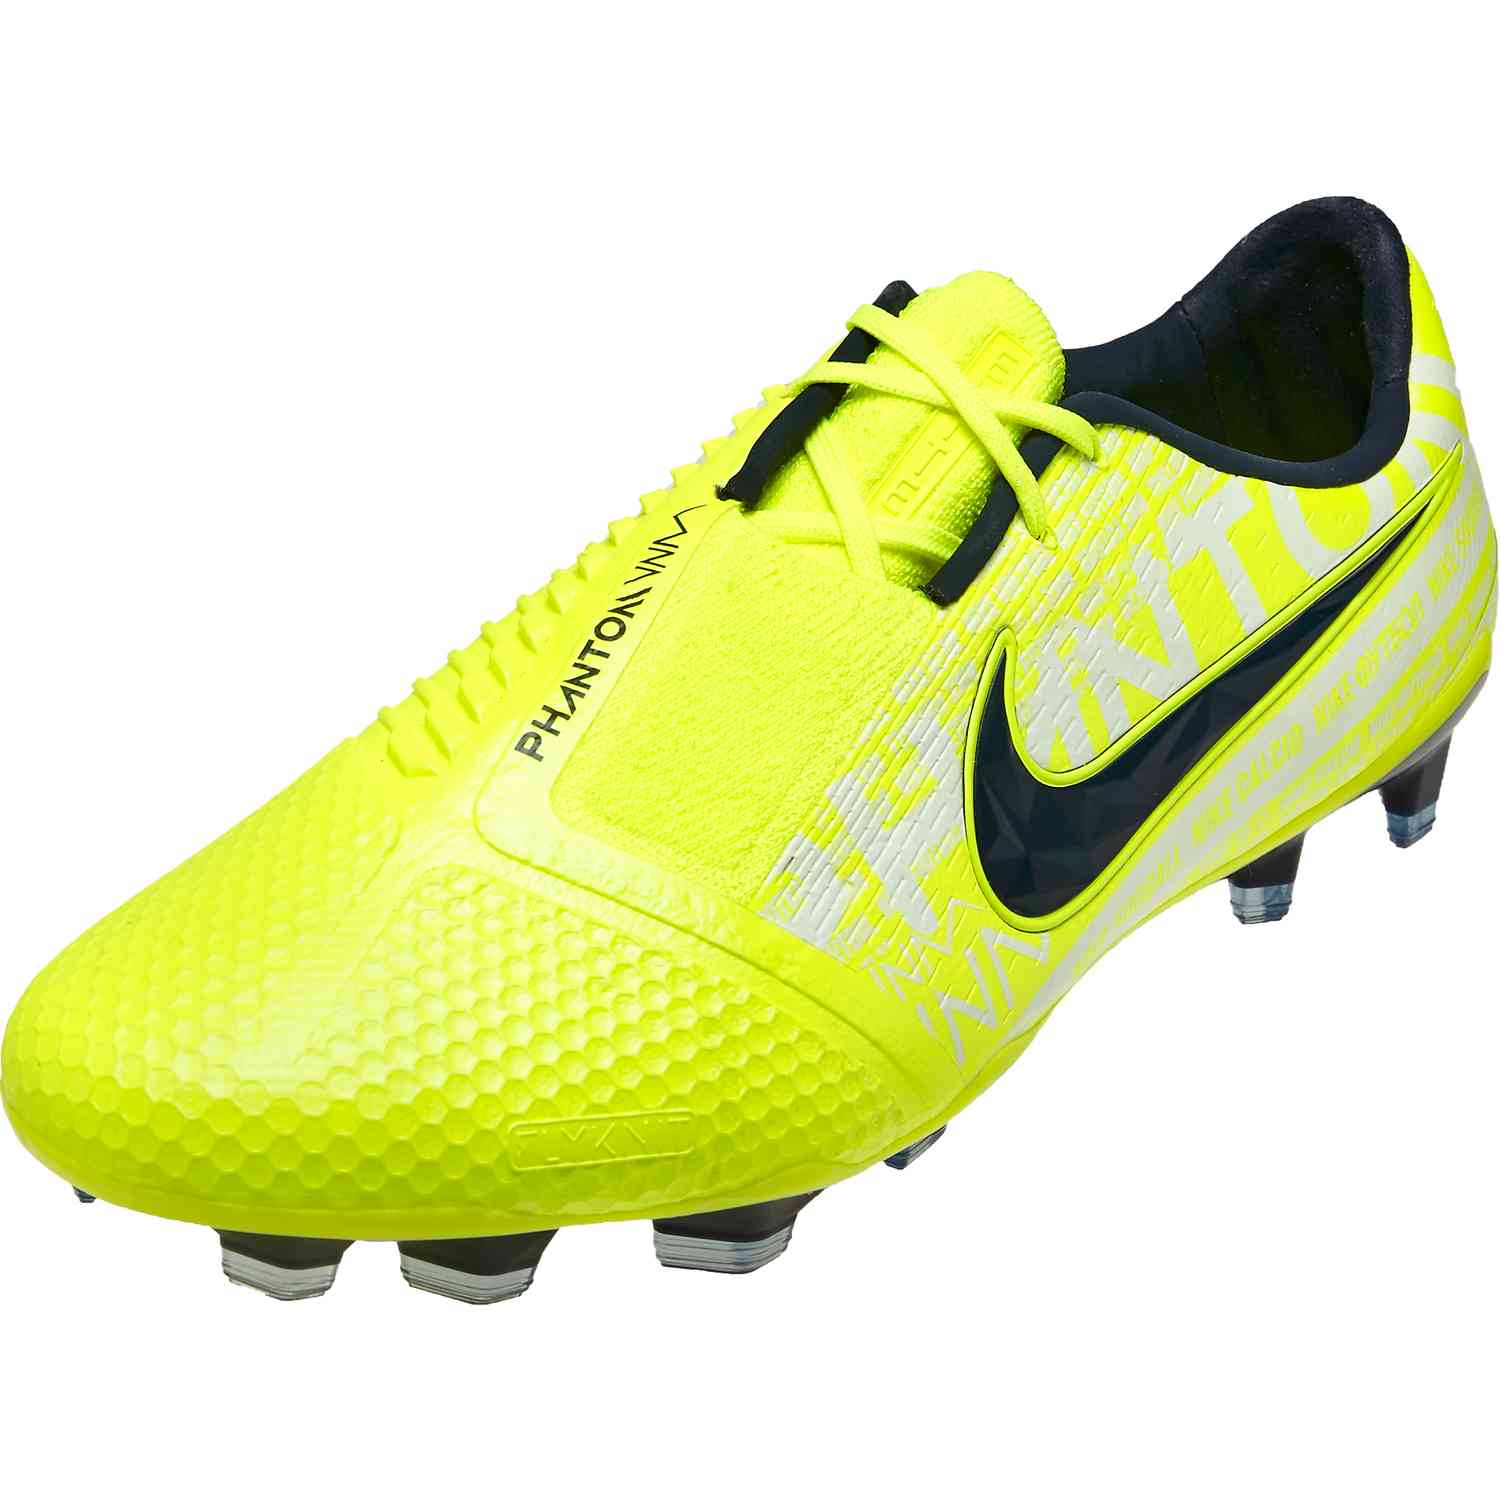 new product 5decb dbff9 Nike Phantom Venom Elite FG - New Lights